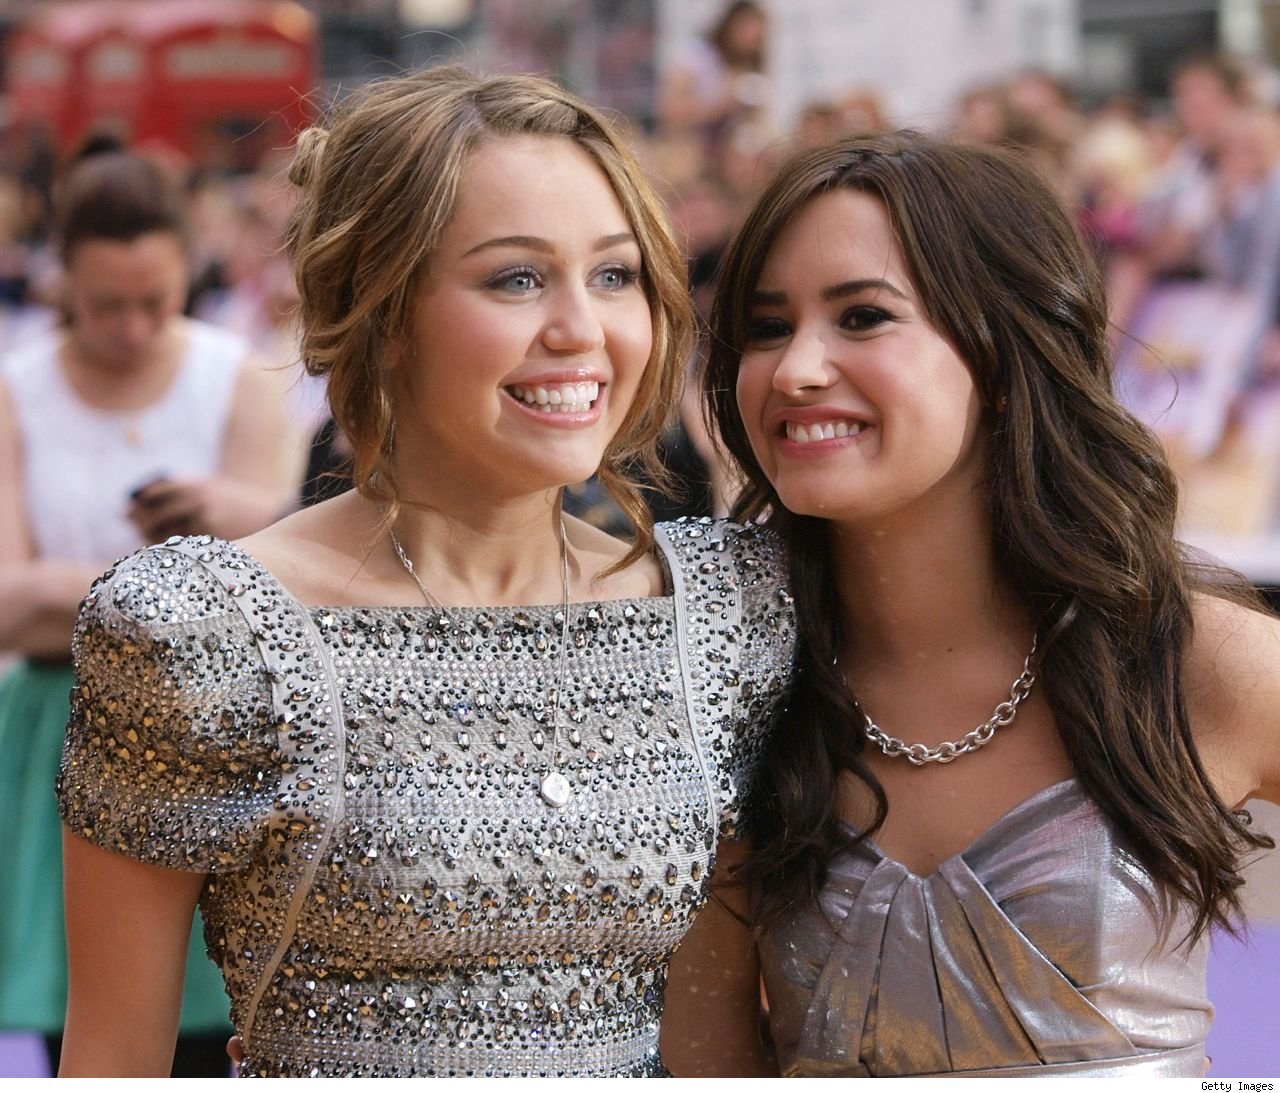 Demi Lovato and Miley Cyrus best friends Twitter